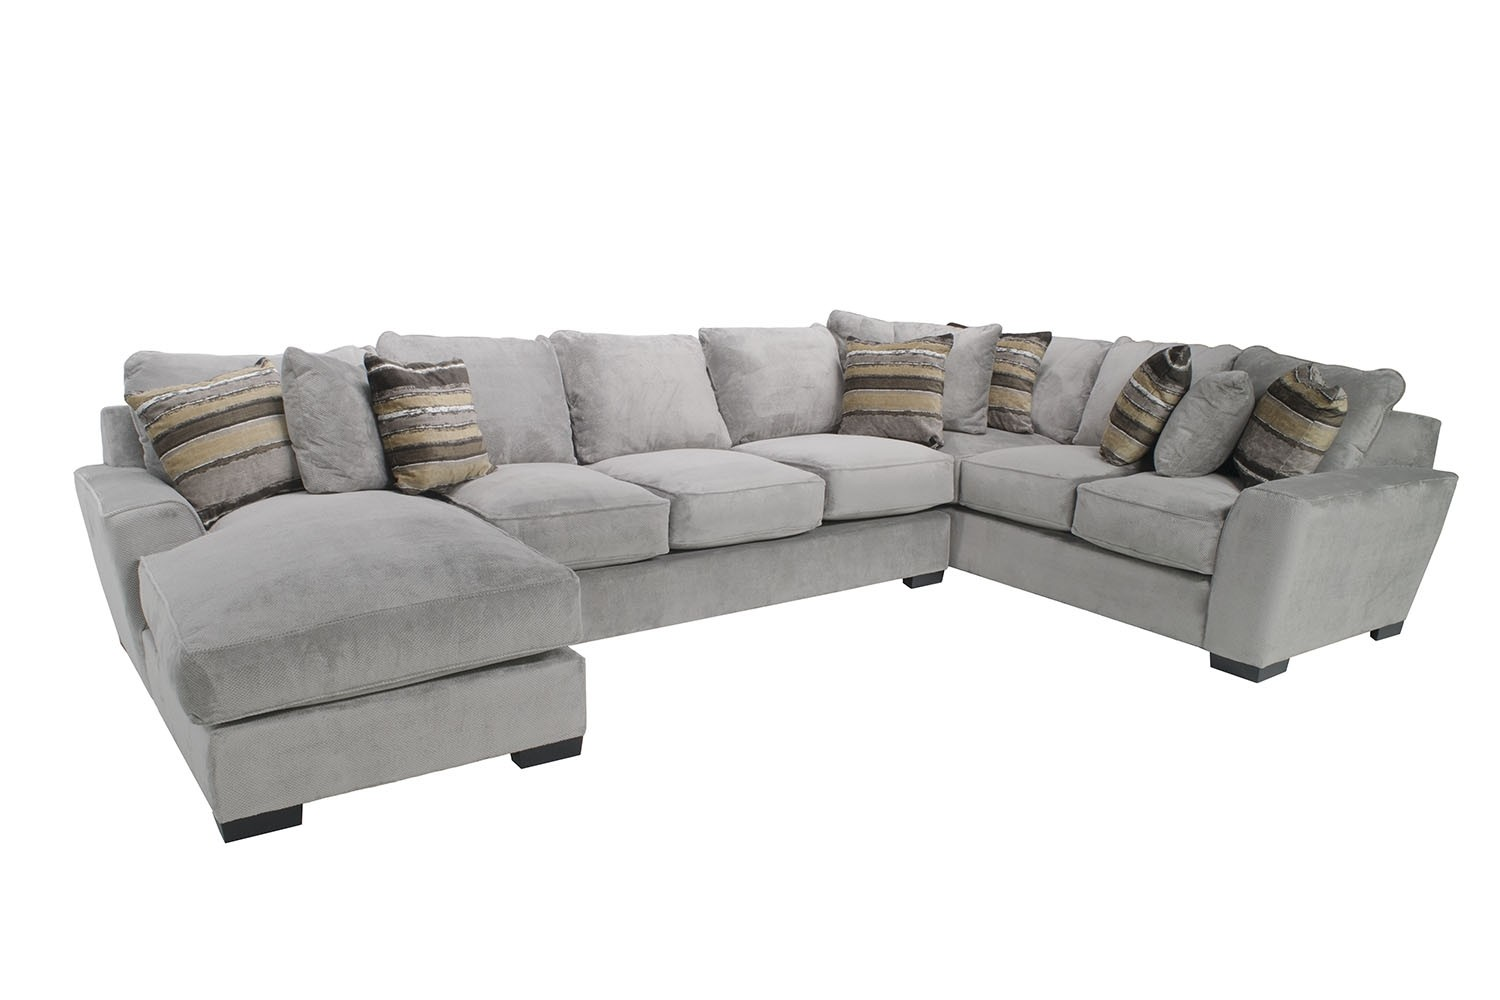 Oracle Down Left Facing Chaise Sectional In Gray Media Image 1